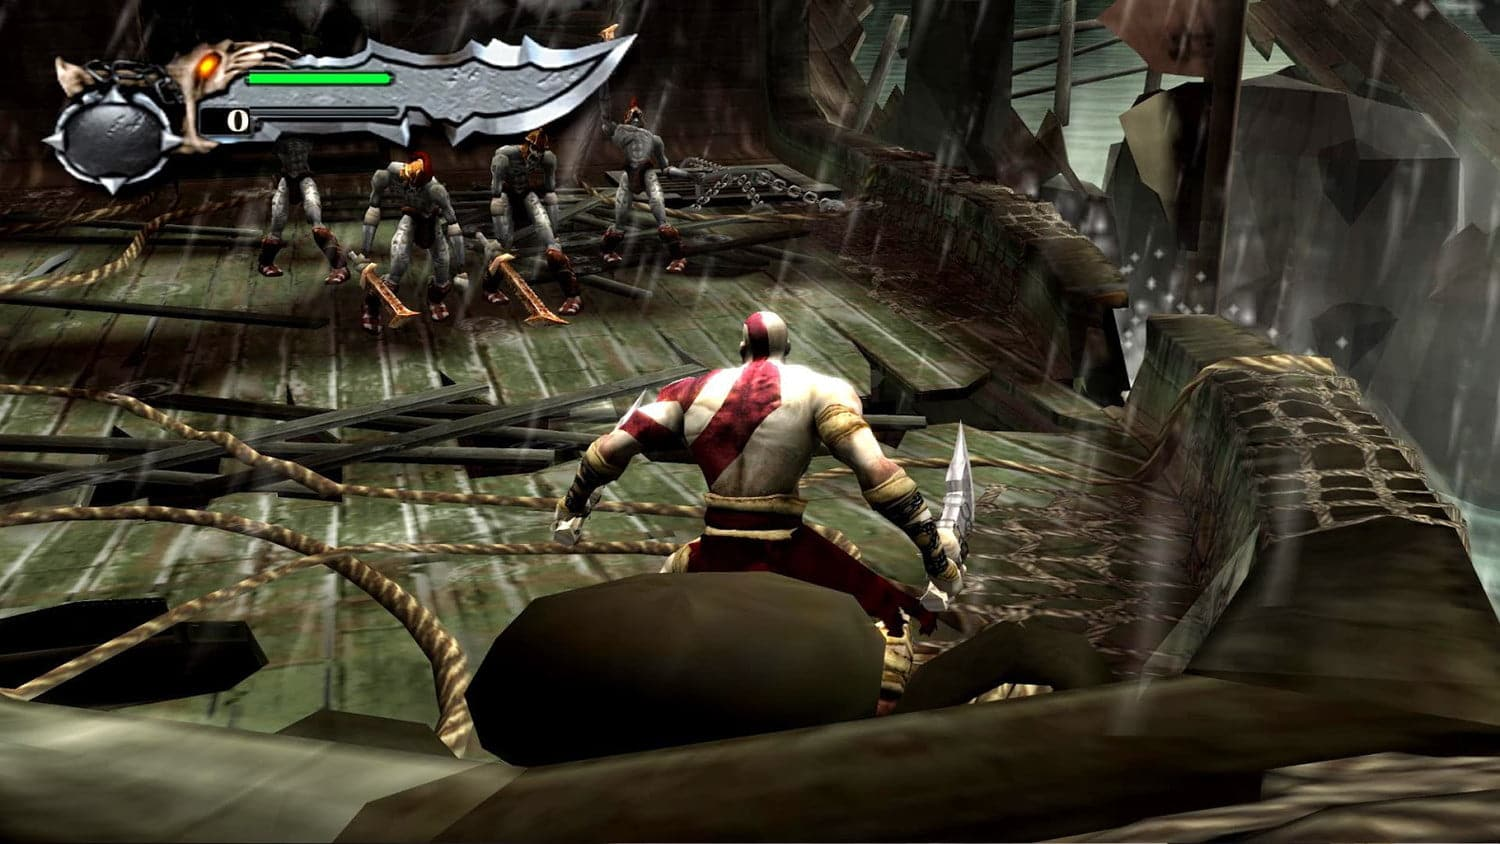 action in RPG game